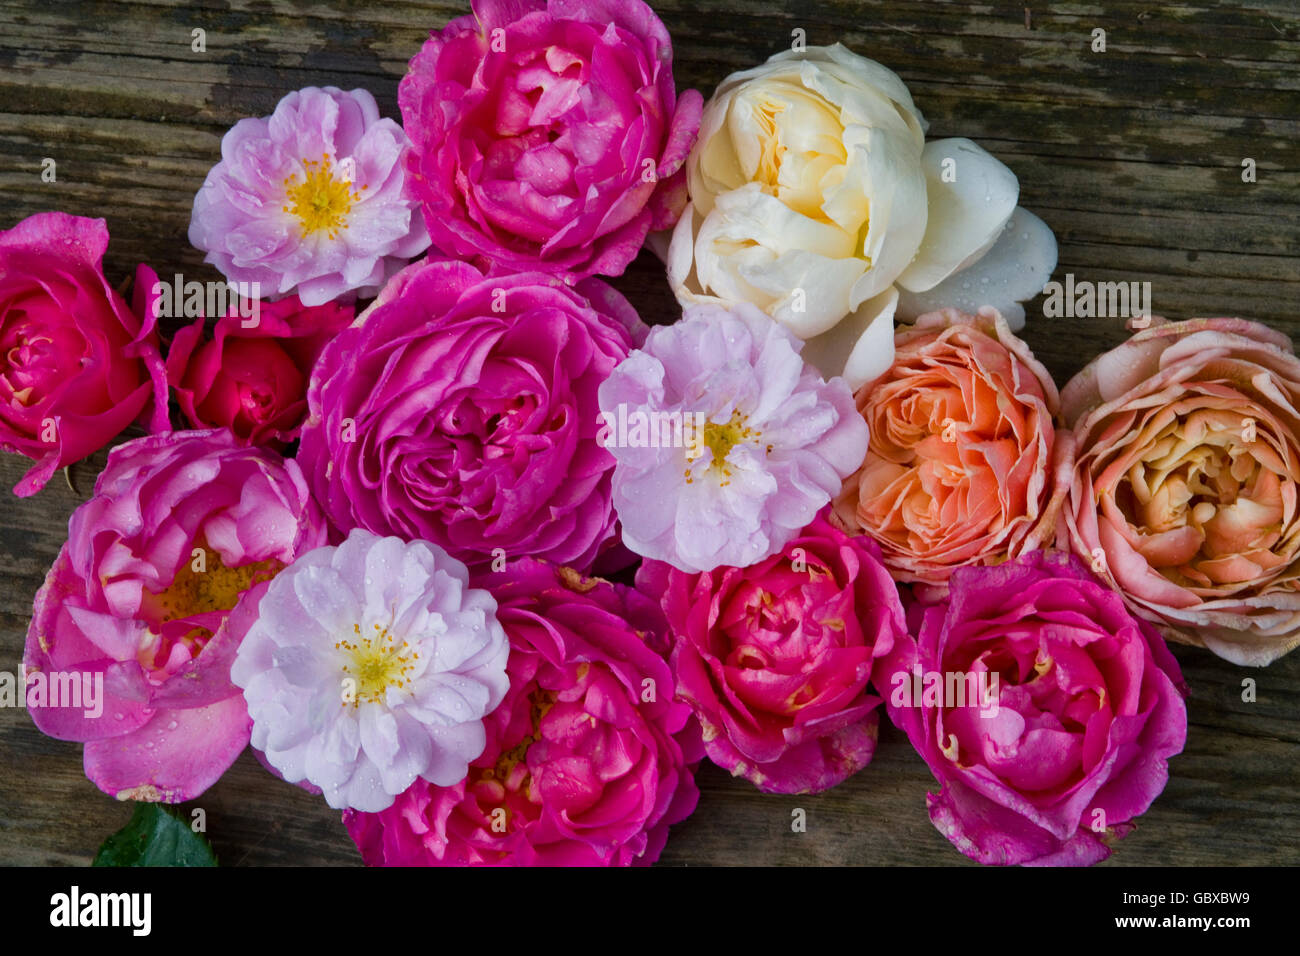 Bunch of roses - Stock Image